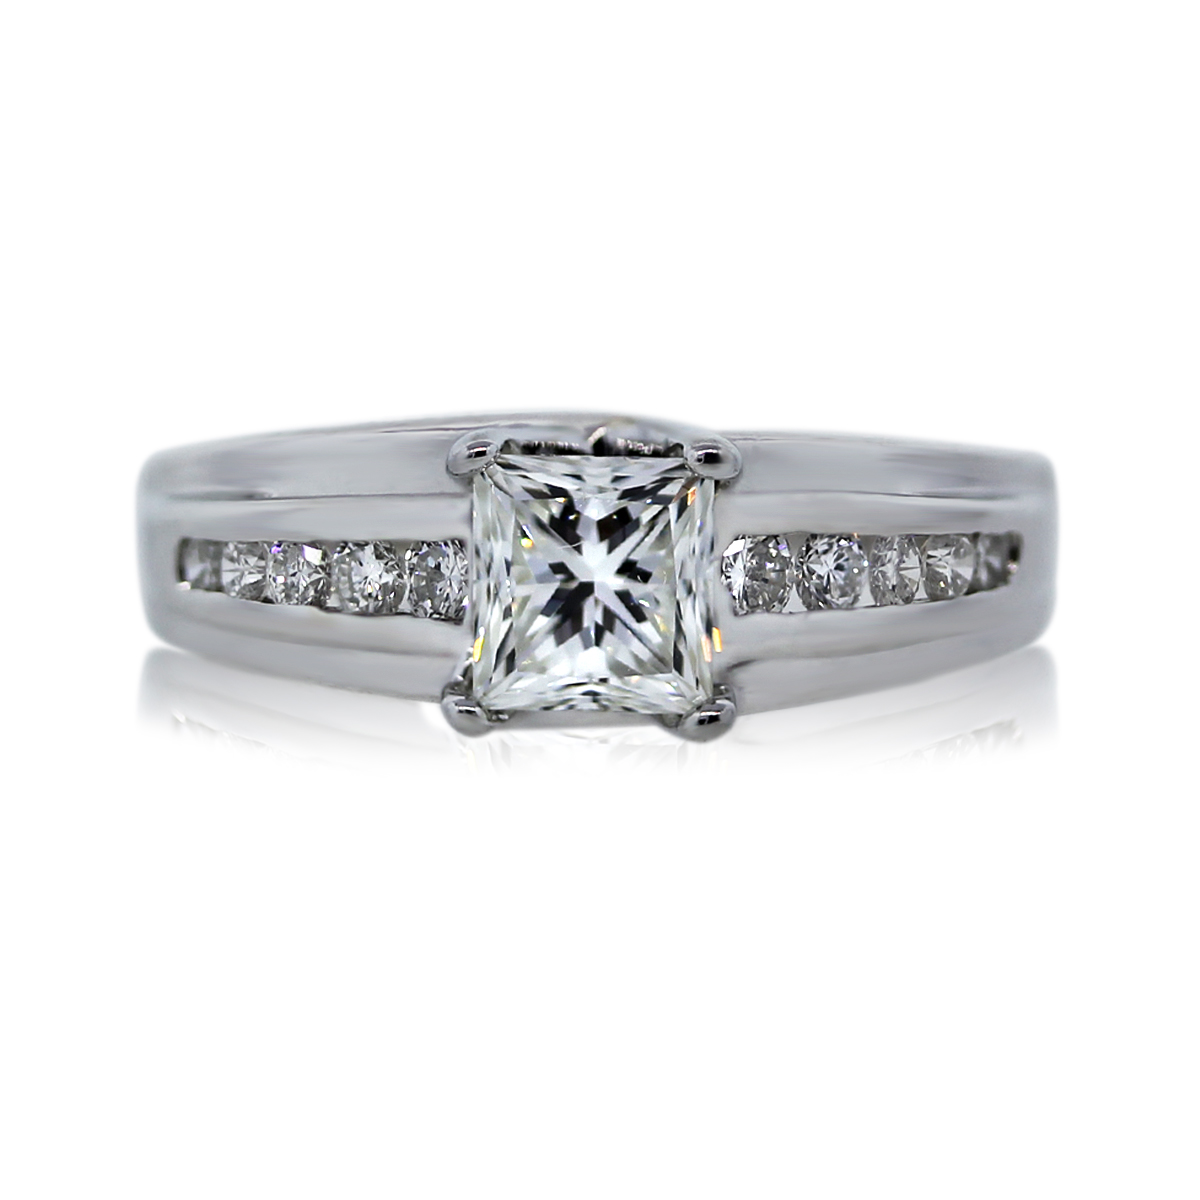 You are Viewing this 18k White Gold 0.90ct Princess Cut Engagement Ring